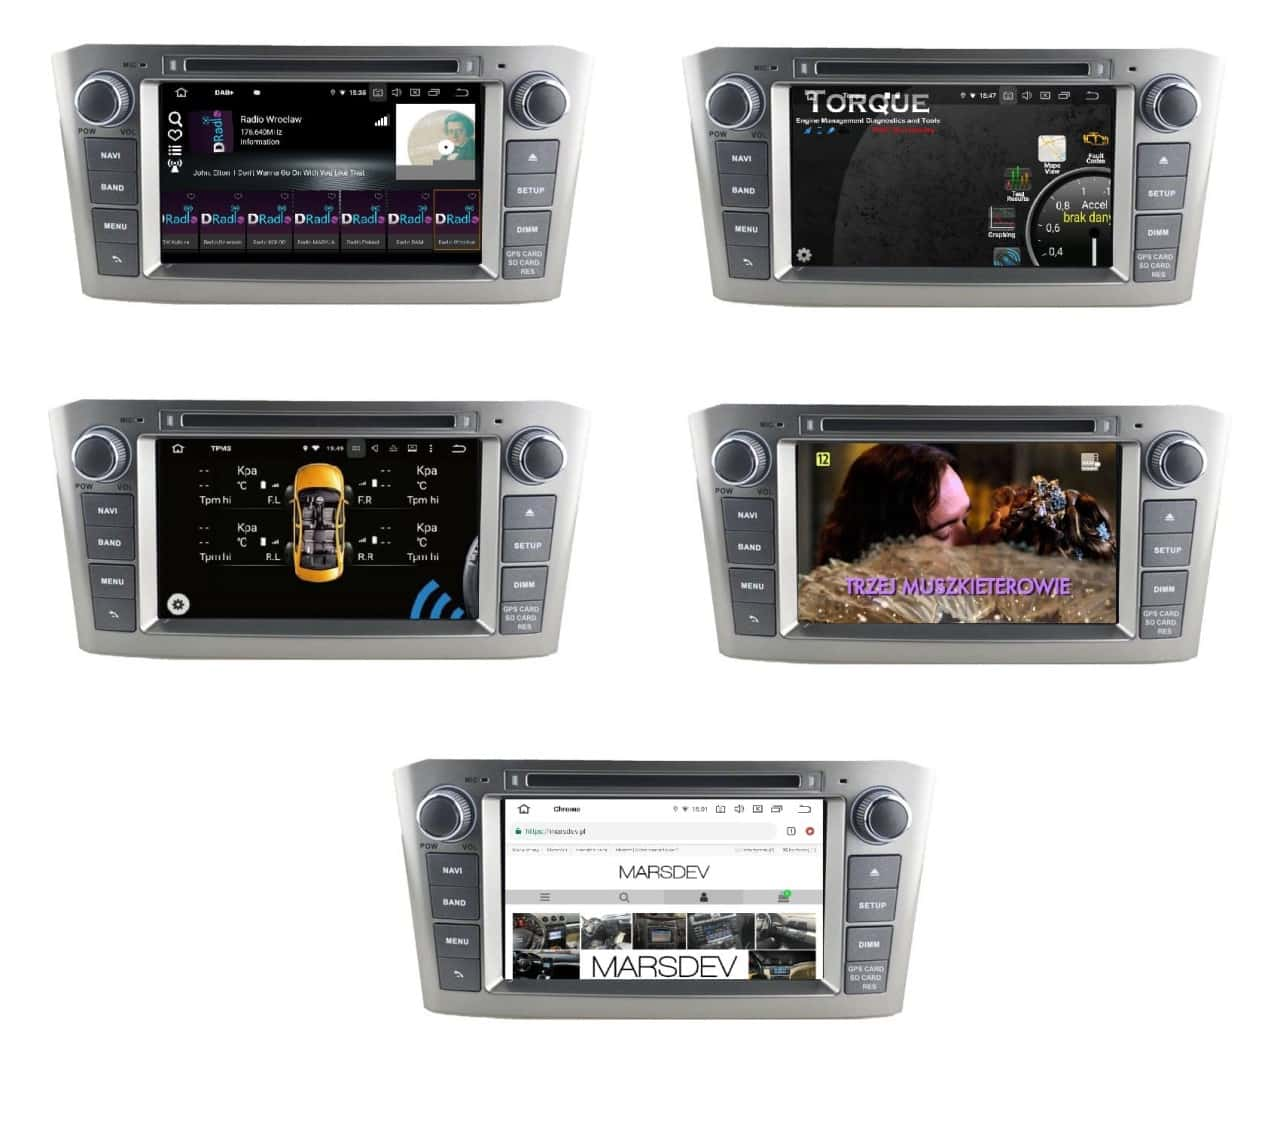 Radio_2_din_Toyota_T25_PX5_4_64_GB_Android_DAB_Torque_TPMS_DVB-T_Chrome